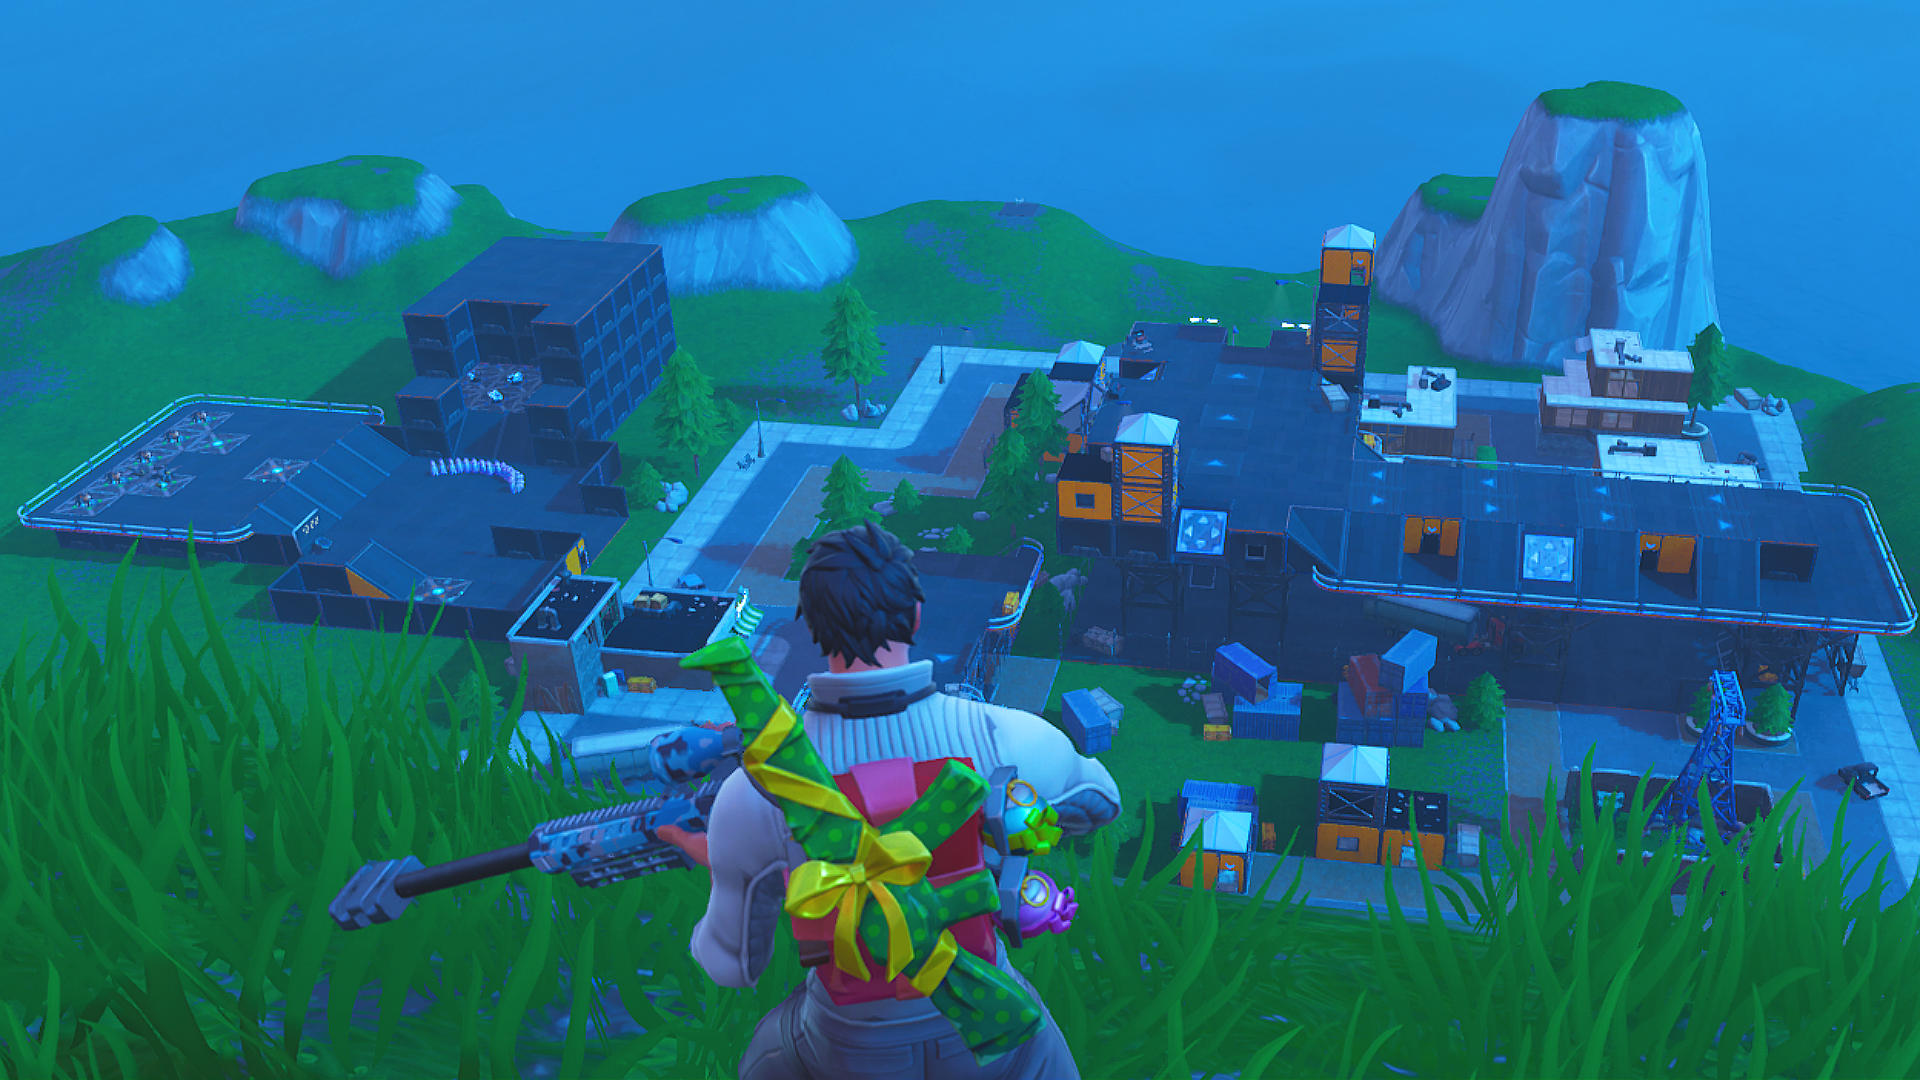 Fortnite Island Codes The Best Creative Maps And How Sharing Works Pcgamesn This is the very first map introduced when fortnite battle royale launched. fortnite island codes the best